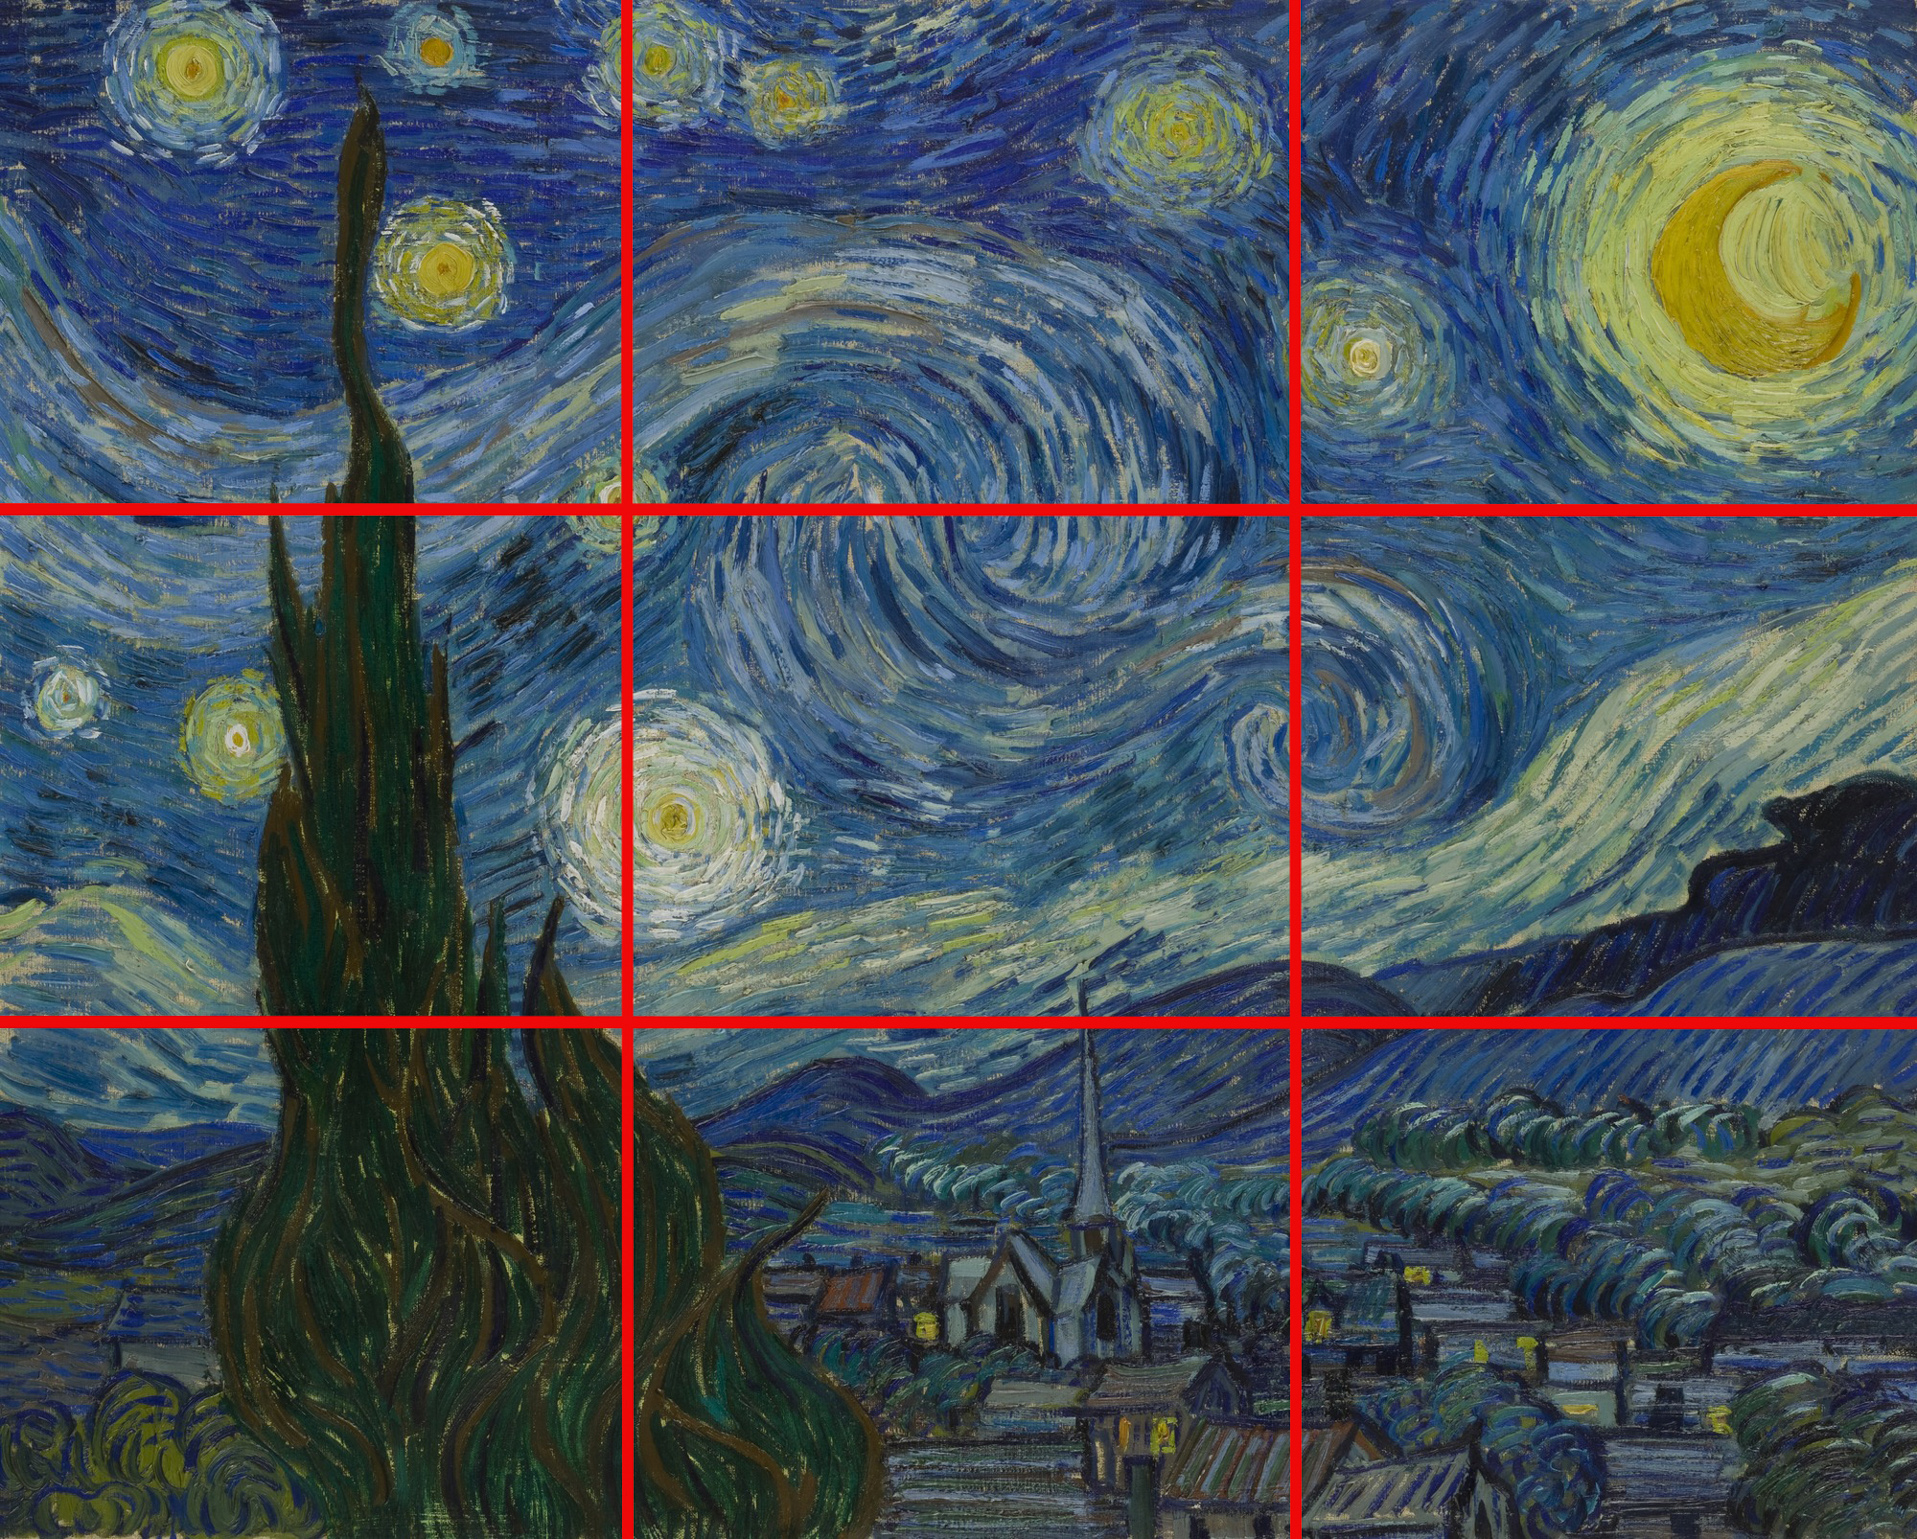 starry night by vincent van gogh, illustrating the rule of thirds.